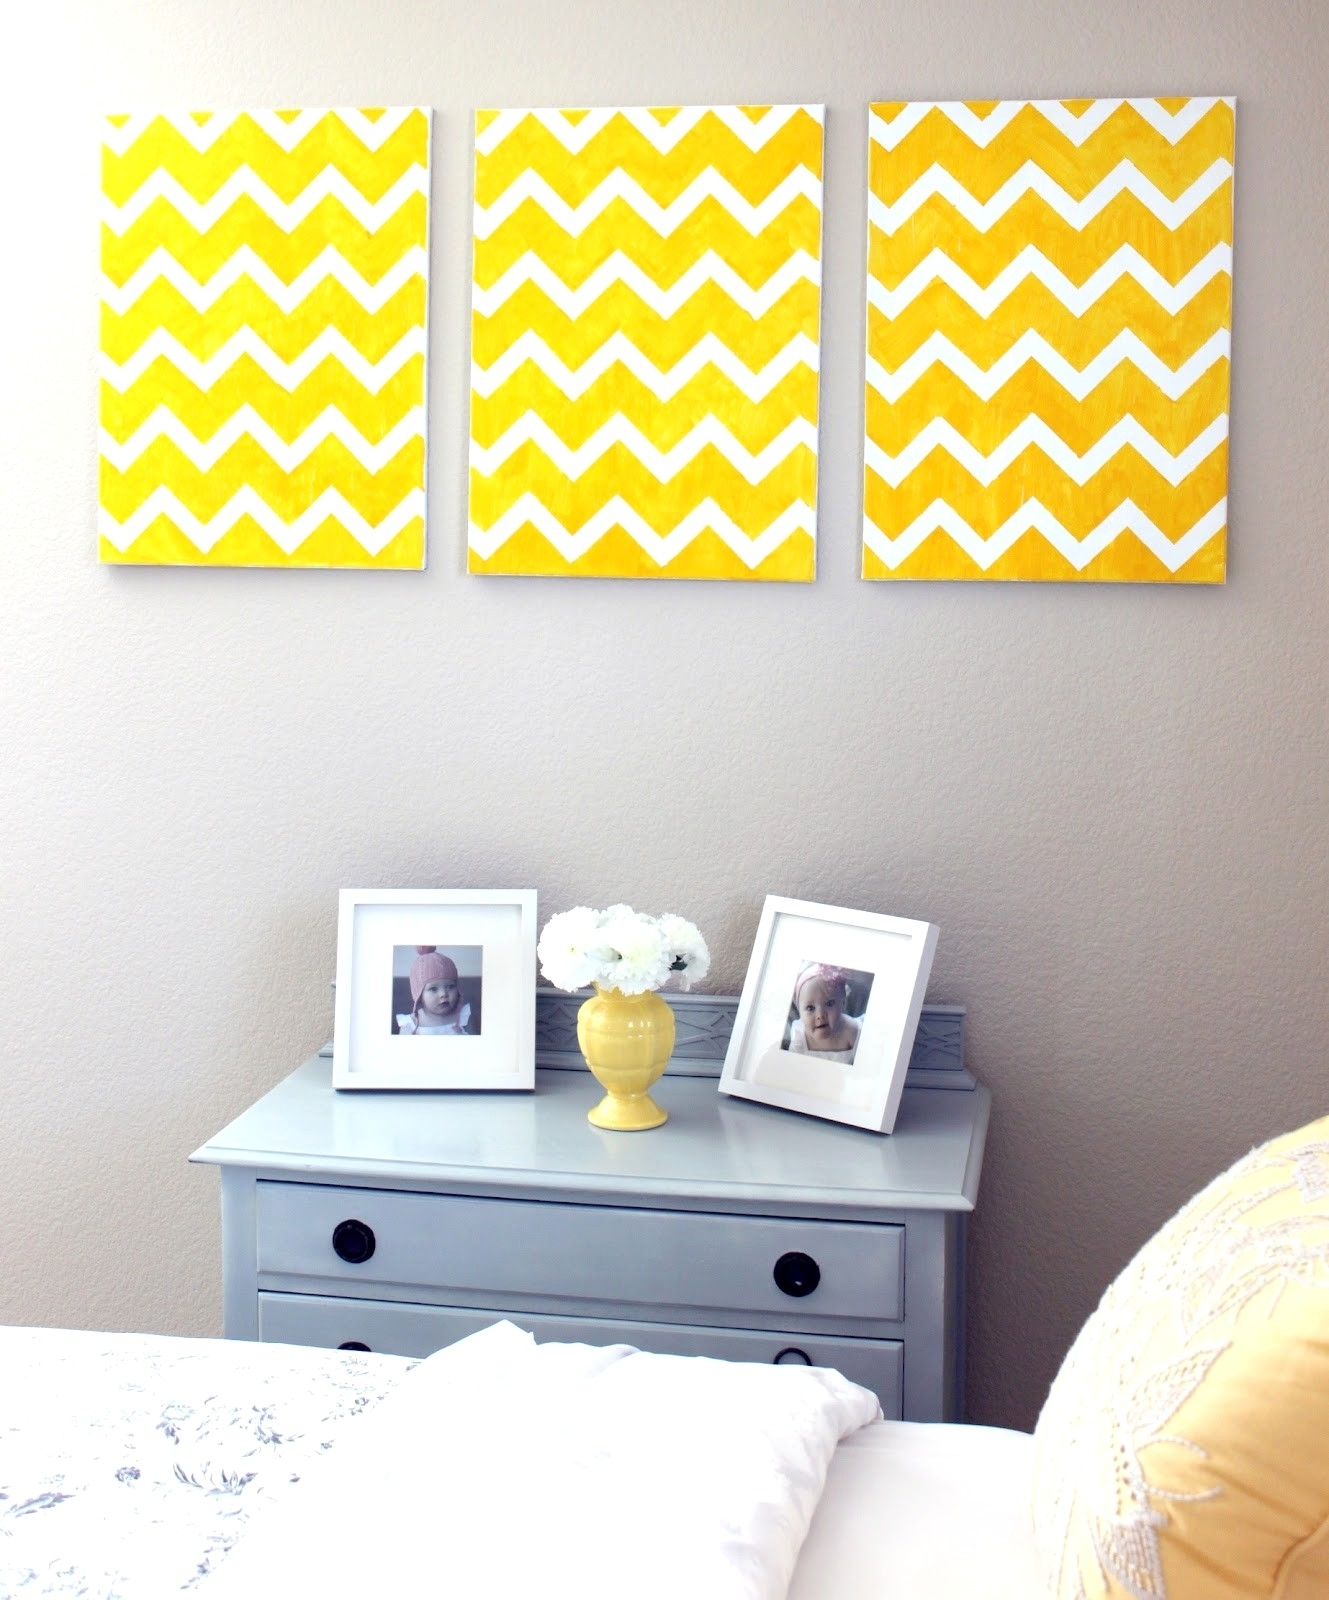 13 Diy Chevron Wall Art - Thebusinessuk with Chevron Wall Art (Image 1 of 20)